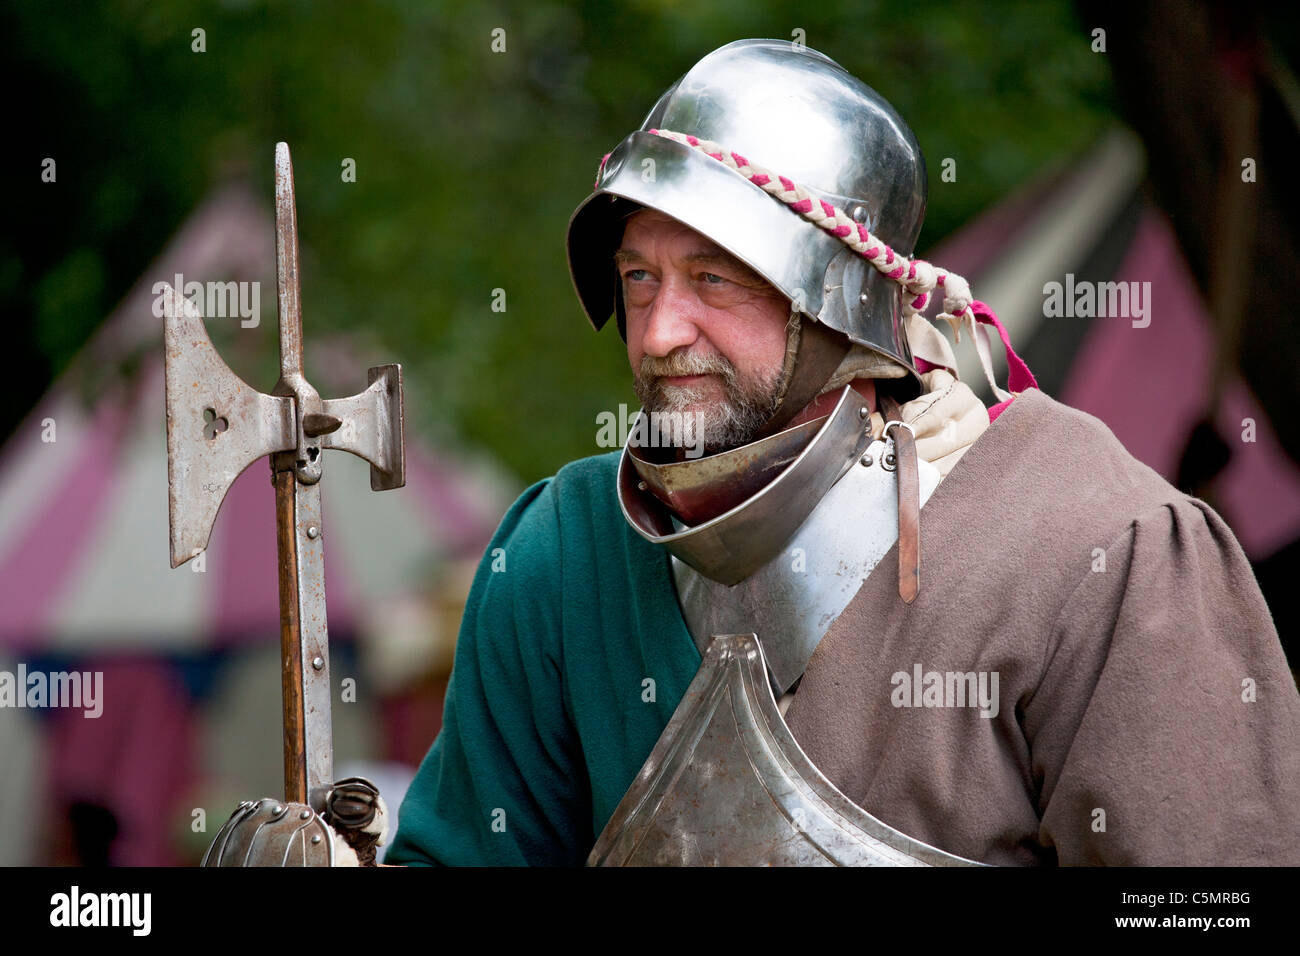 A medieval soldier at the Chesterfield Medieval Market, Derbyshire, England, UK - Stock Image